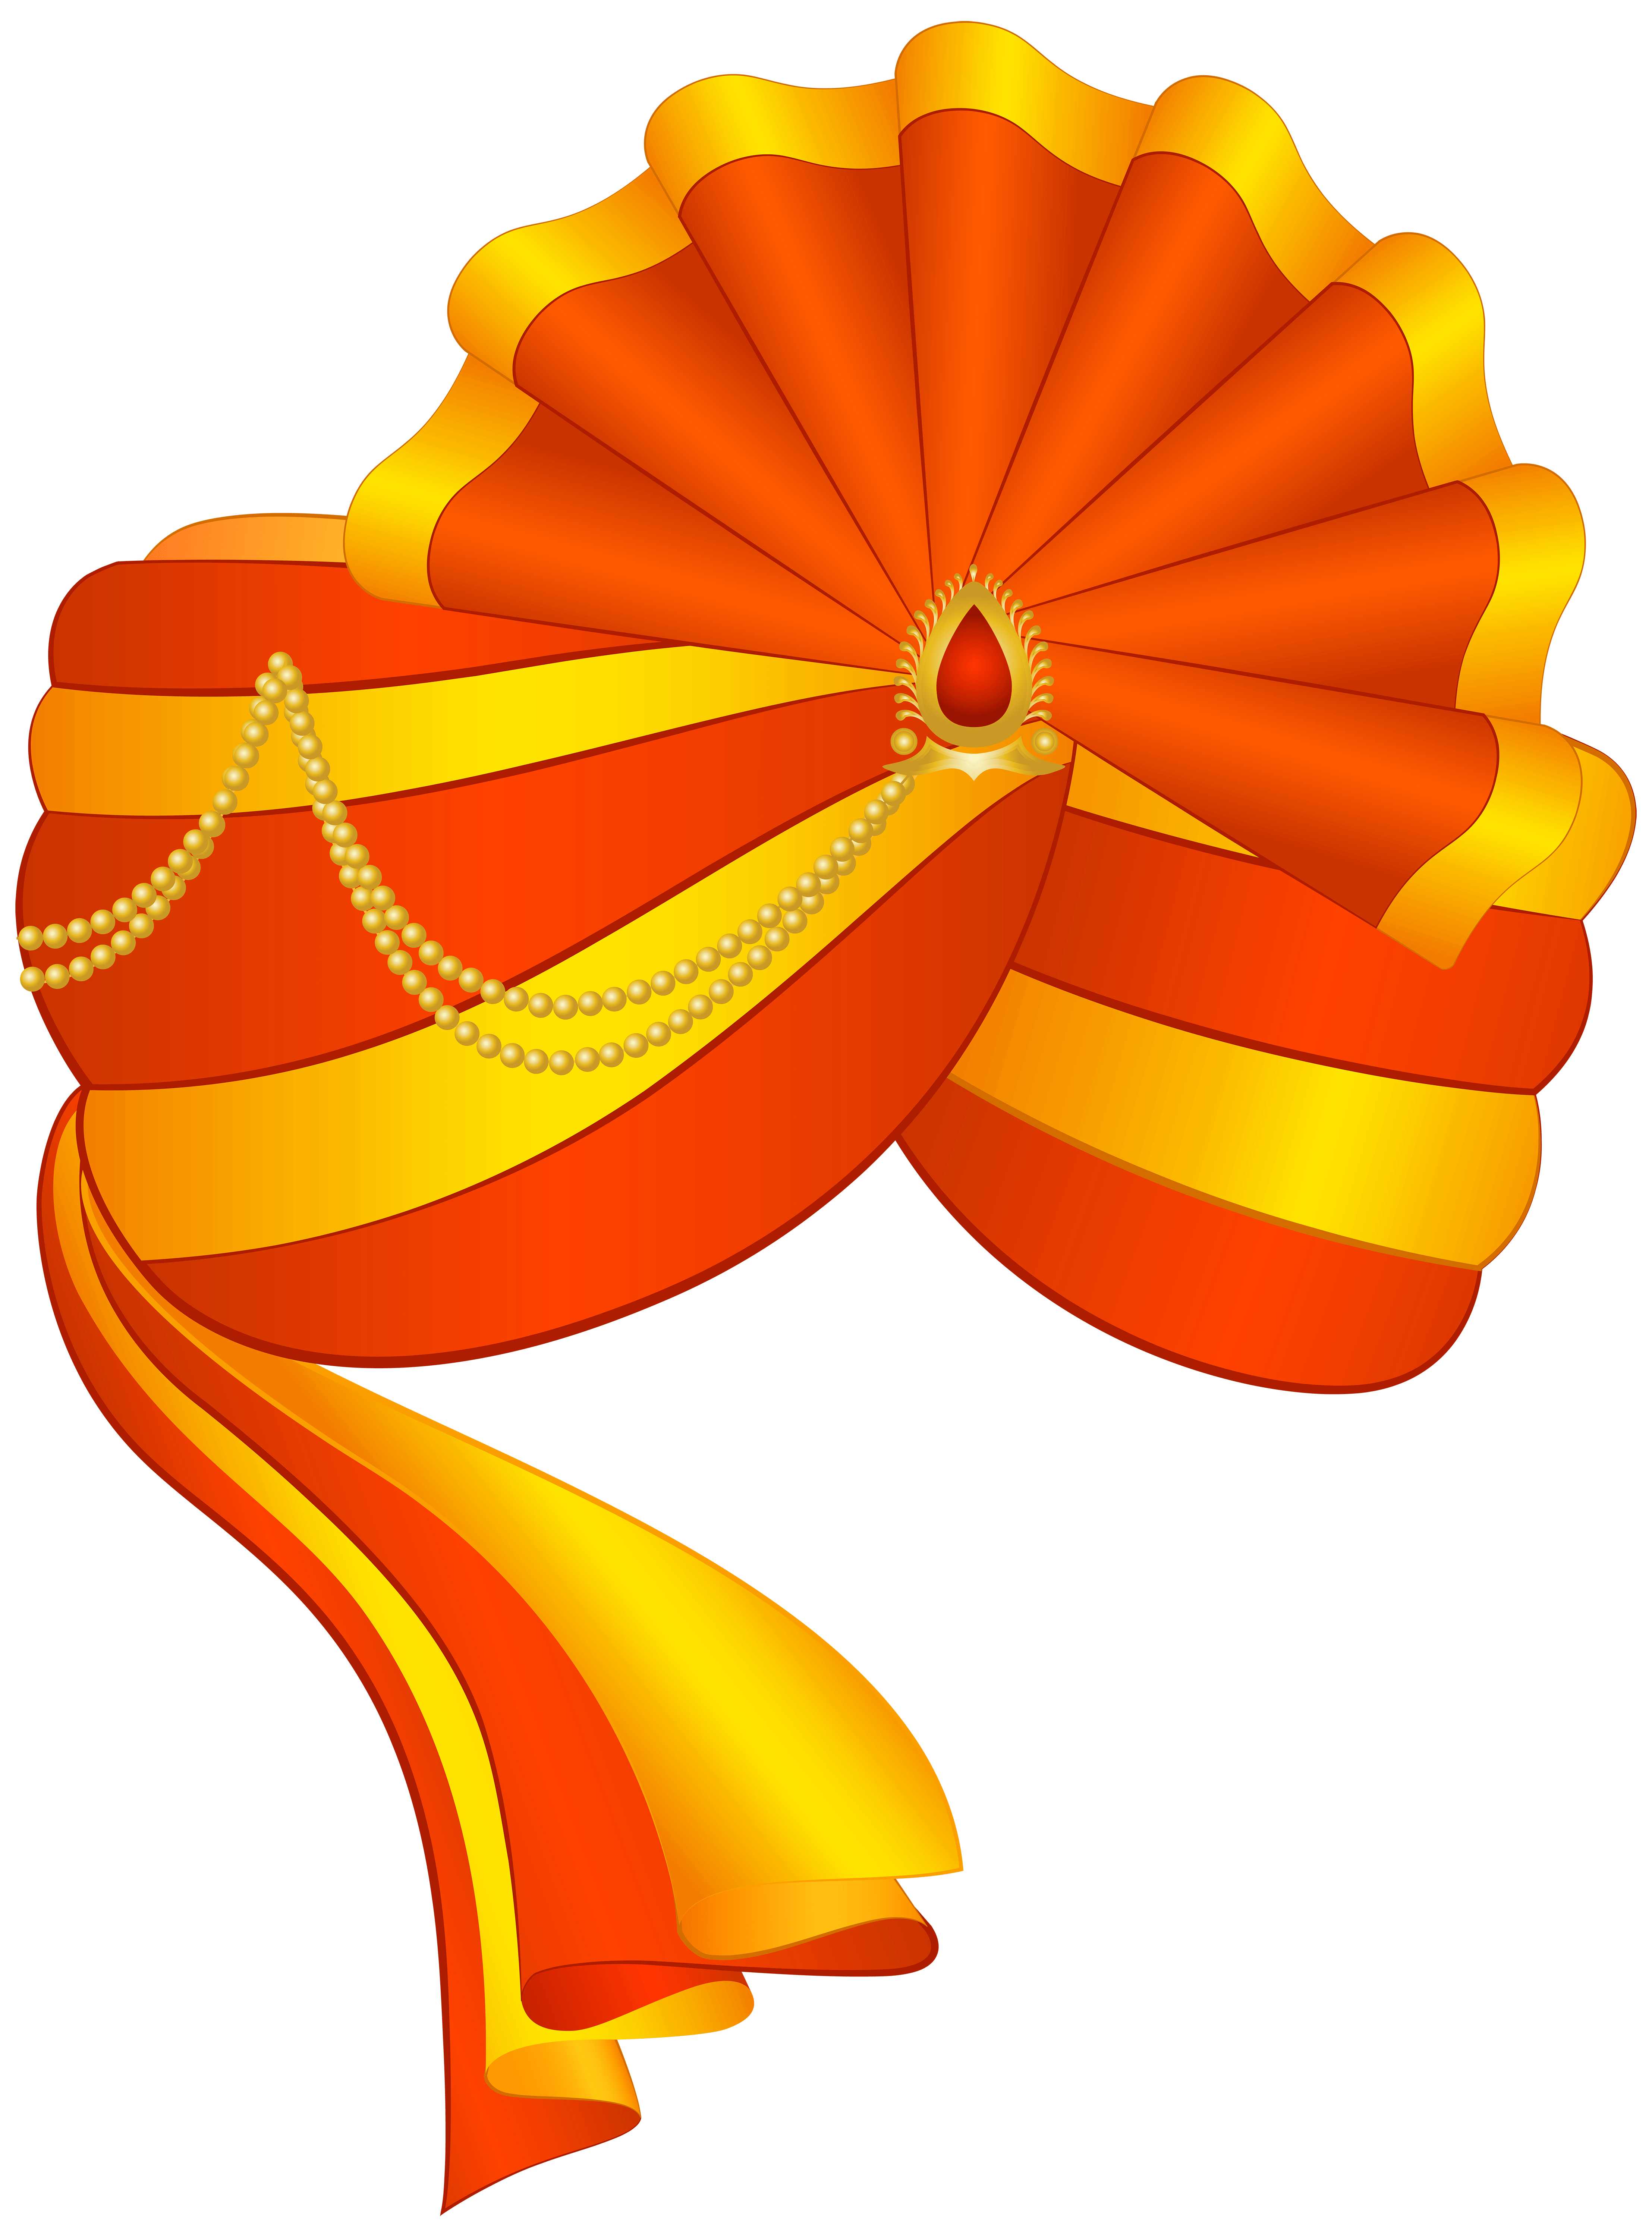 medium resolution of indian turban png transparent clip art image